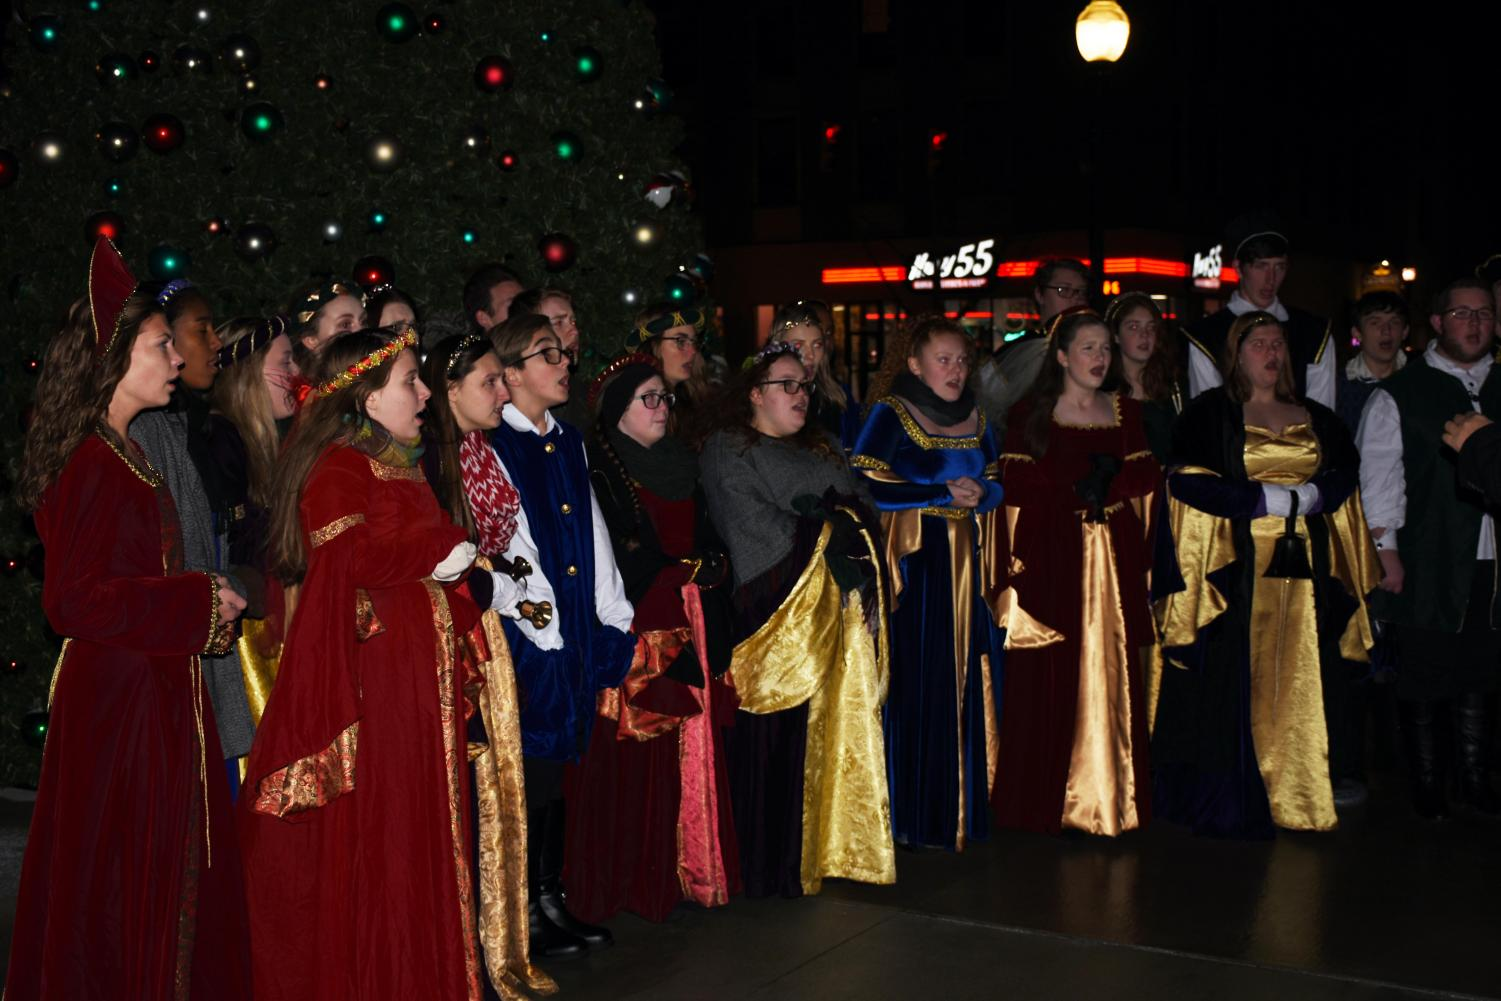 The Huntington community listens to the Cabell Midland High School Collegium Musicum during the annual tree lighting in front of the Big Sandy Superstore Arena on Nov. 27.